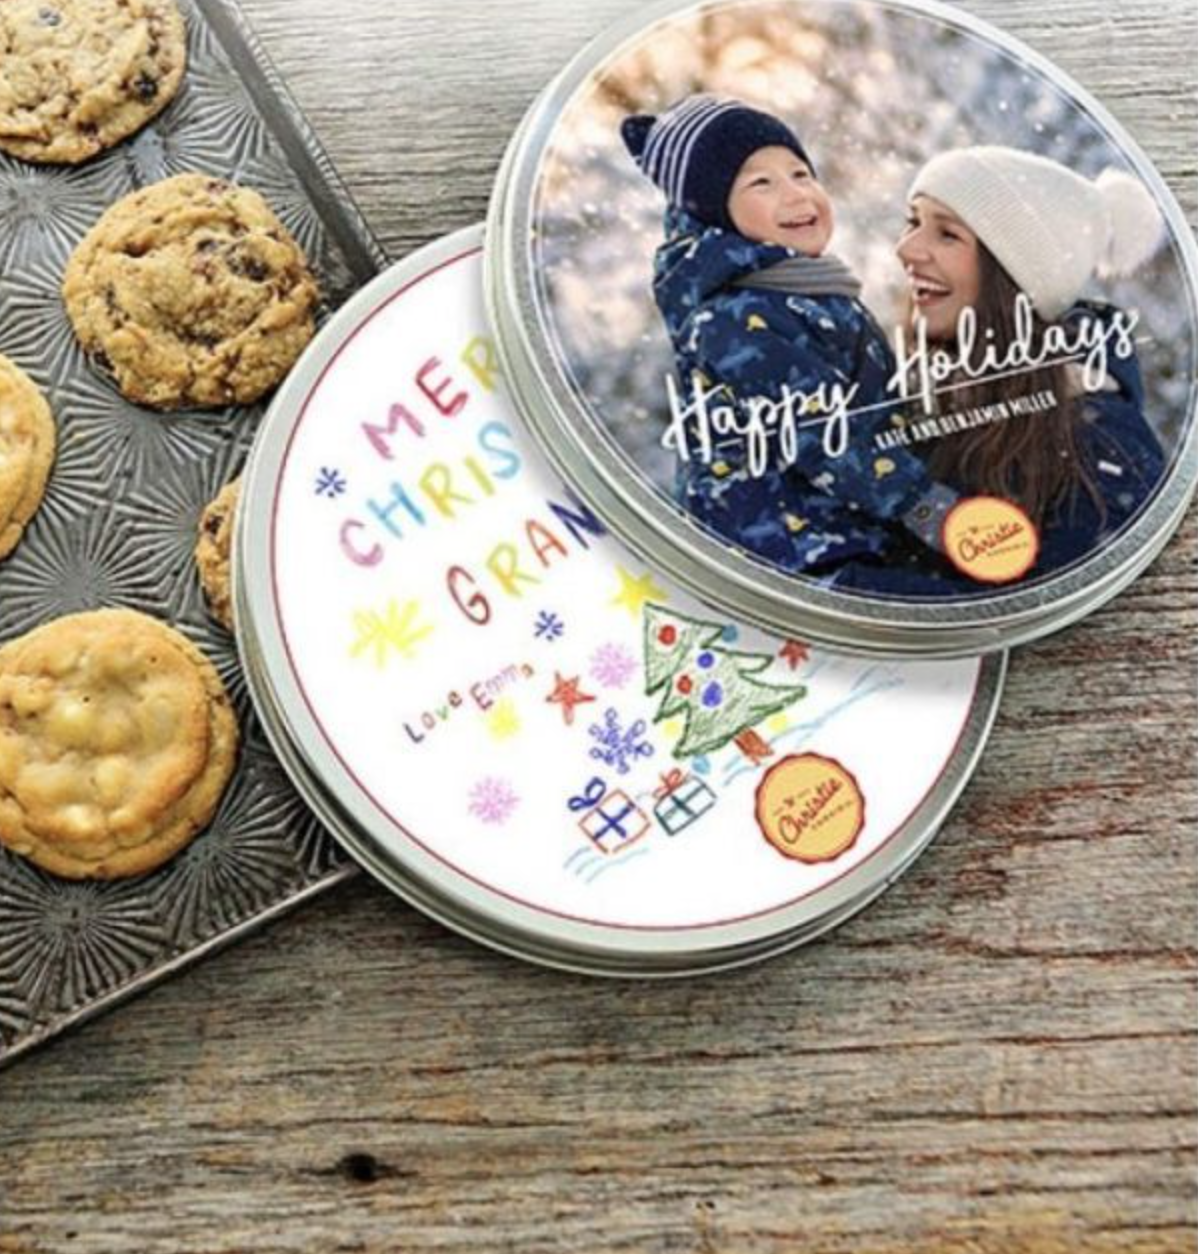 The best mail order cookies from small businesses around the country: Christie Cookies in Nashville